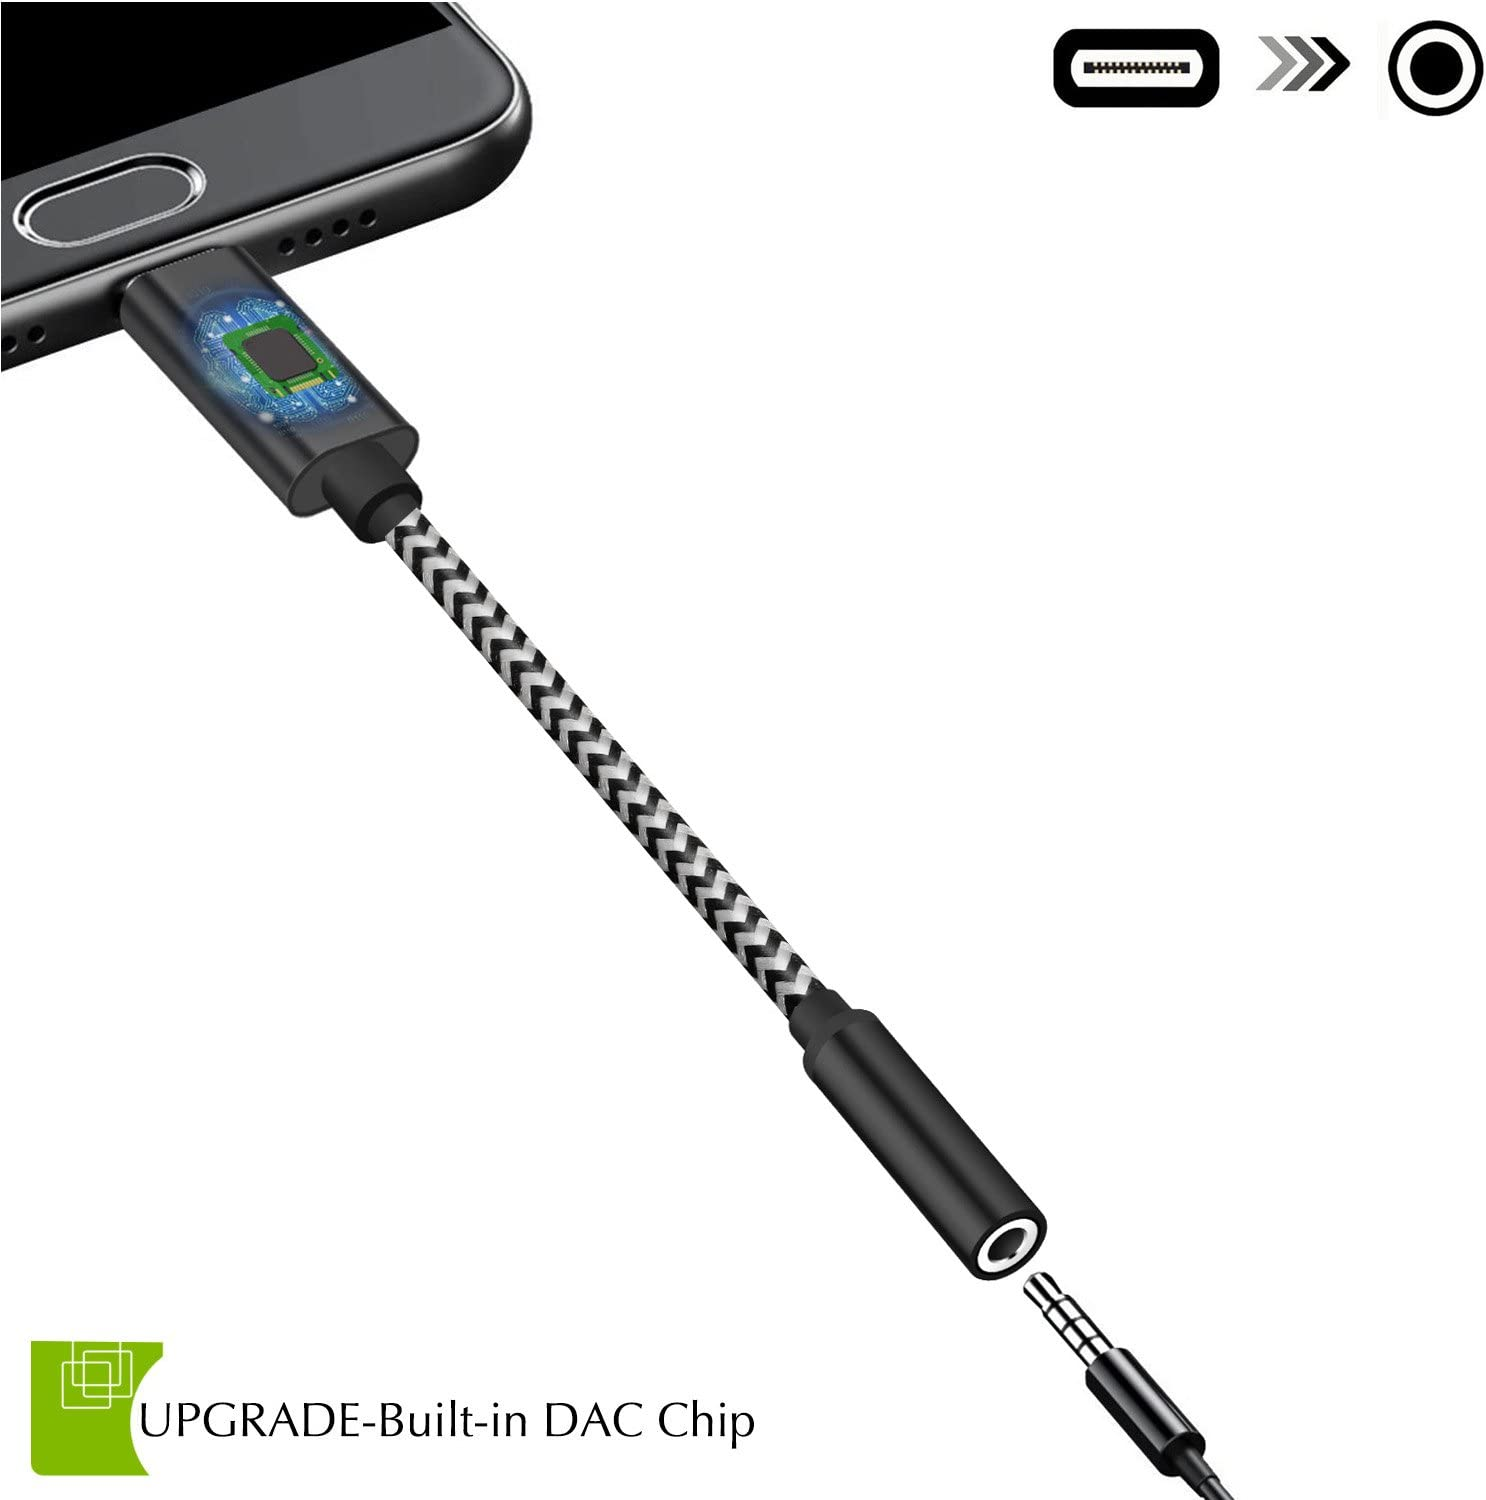 Huawei MacBook HTC Moto Z Dreamvasion USB-C to 3.5mm Adapter Pixel 2 XL Nylon Braided Type C to 3.5mm Aux Headphone Adapter Cable with DAC//Hi-Res for Google Pixel 2 Sony Xiaomi Essential Ph-1